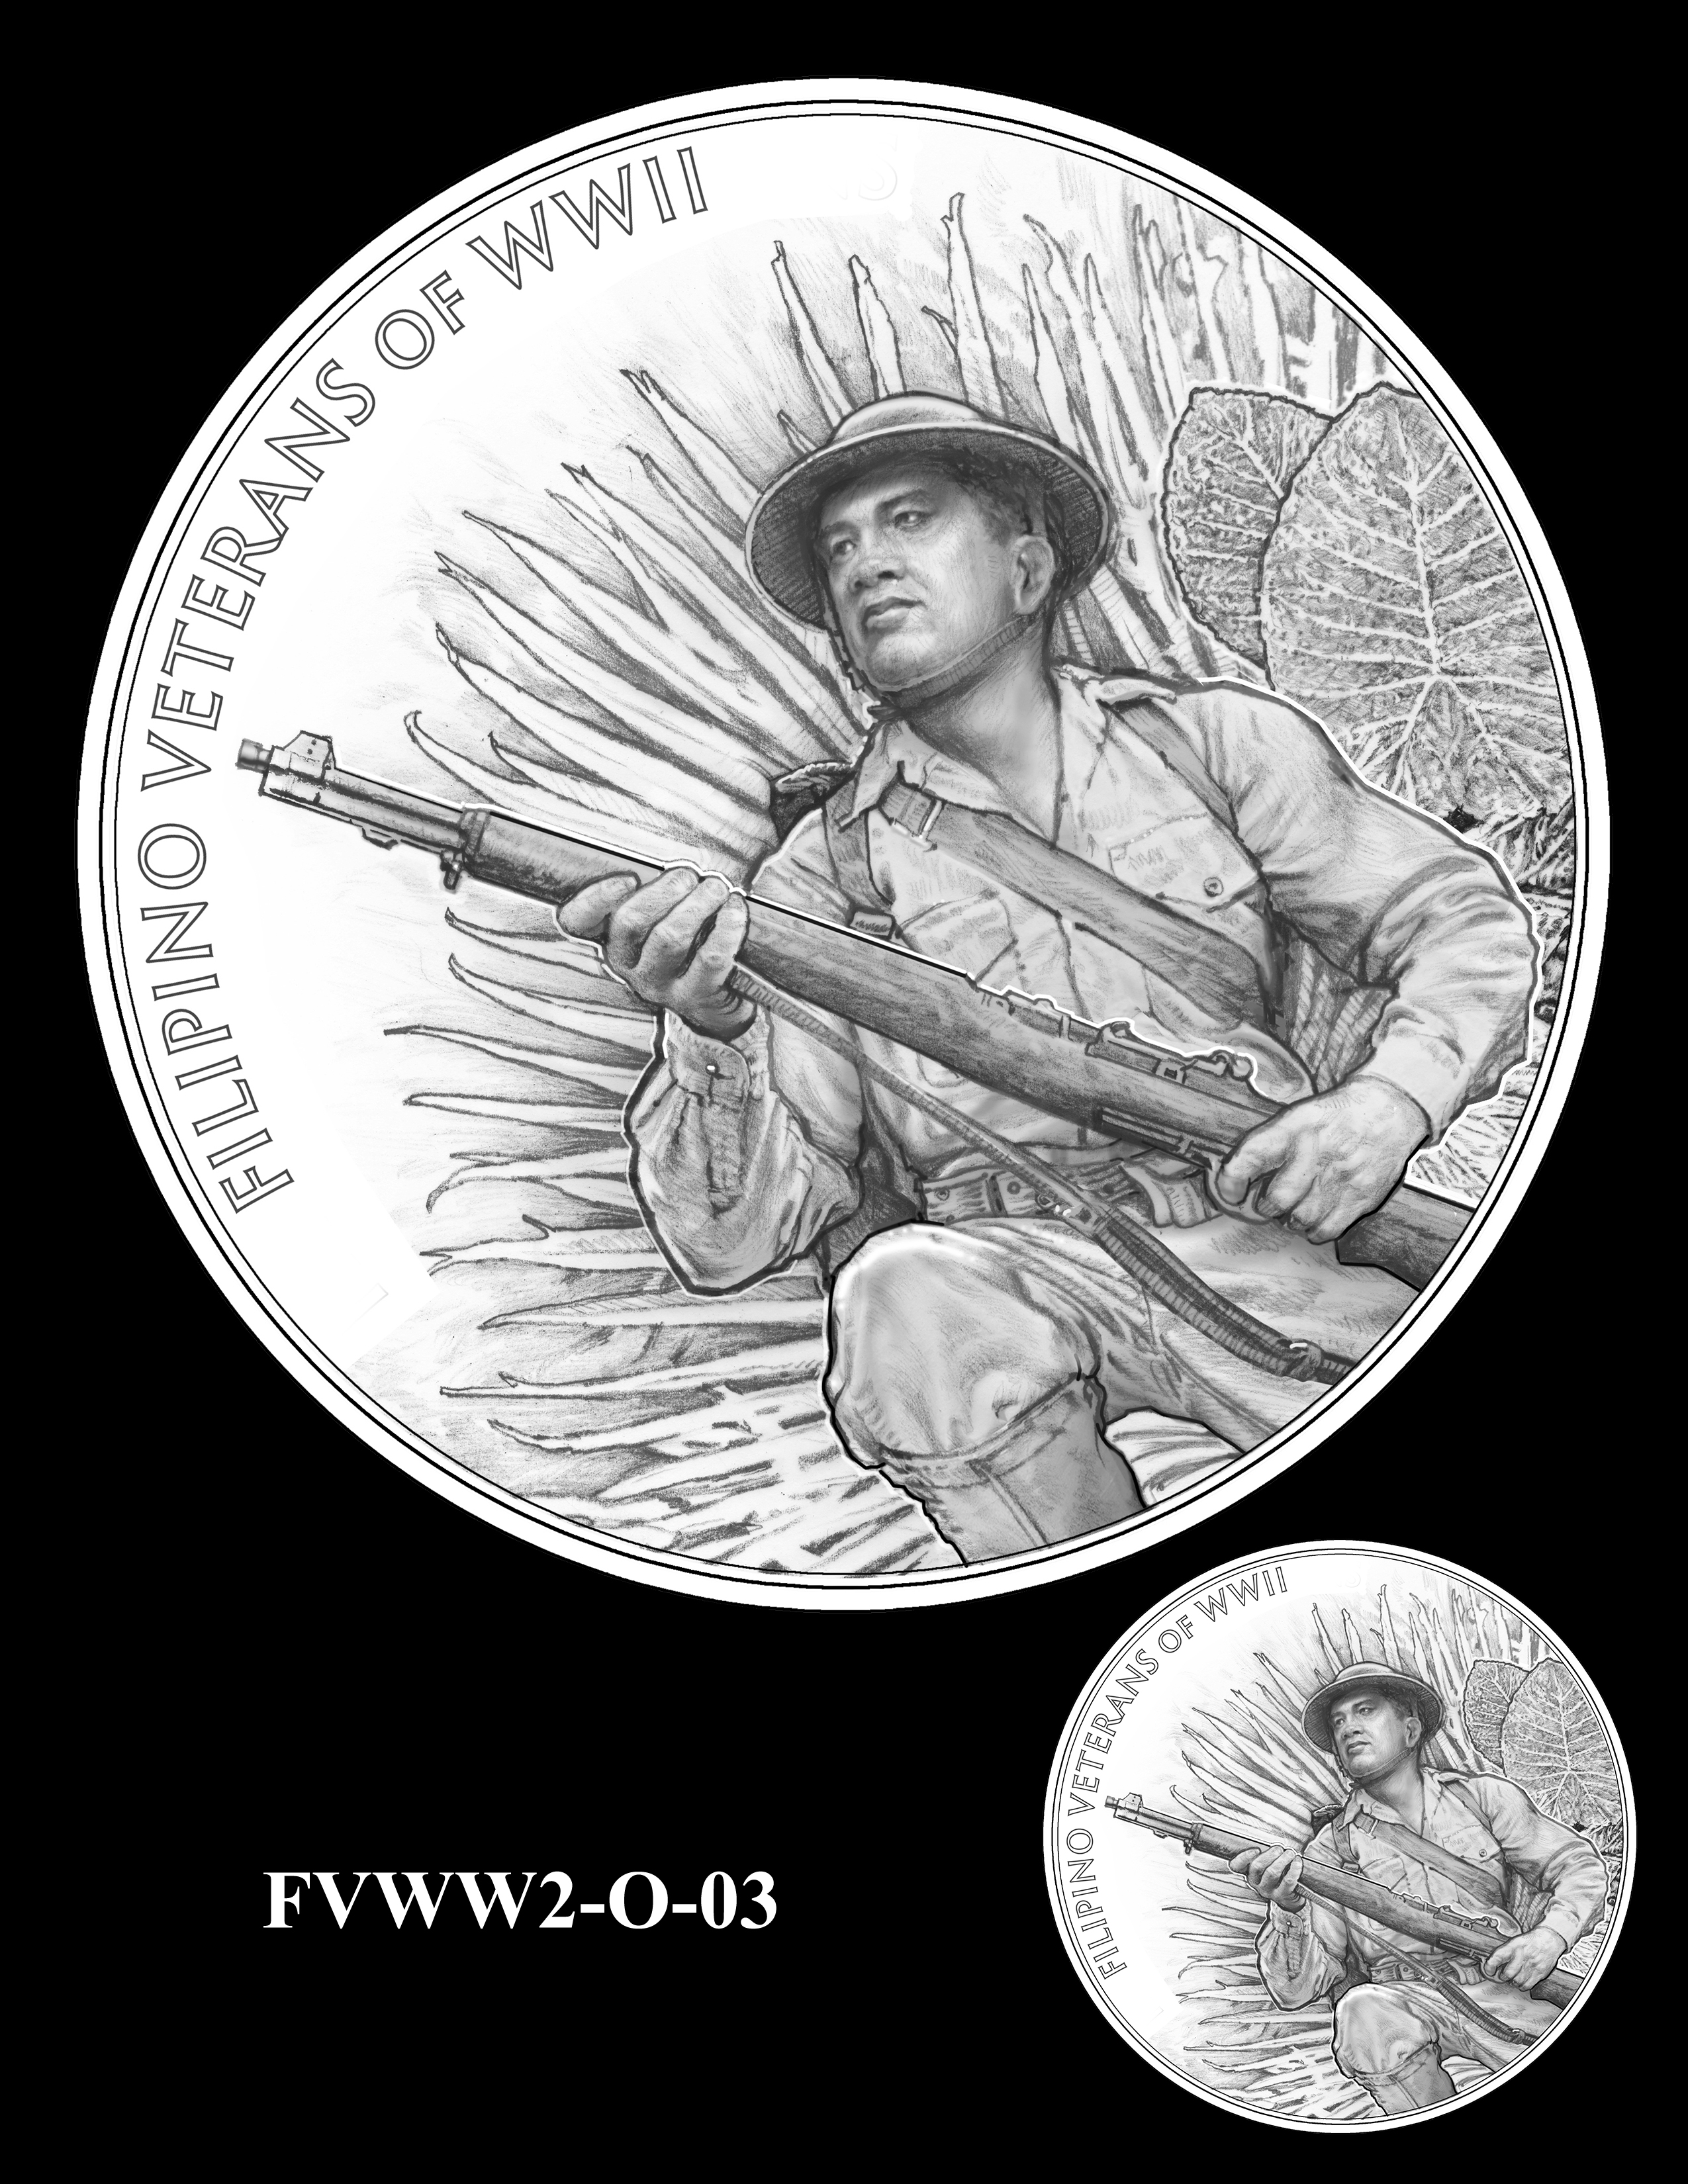 FVWW2-O-03 -- Filipino Veterans of World War II Congressional Gold Medal